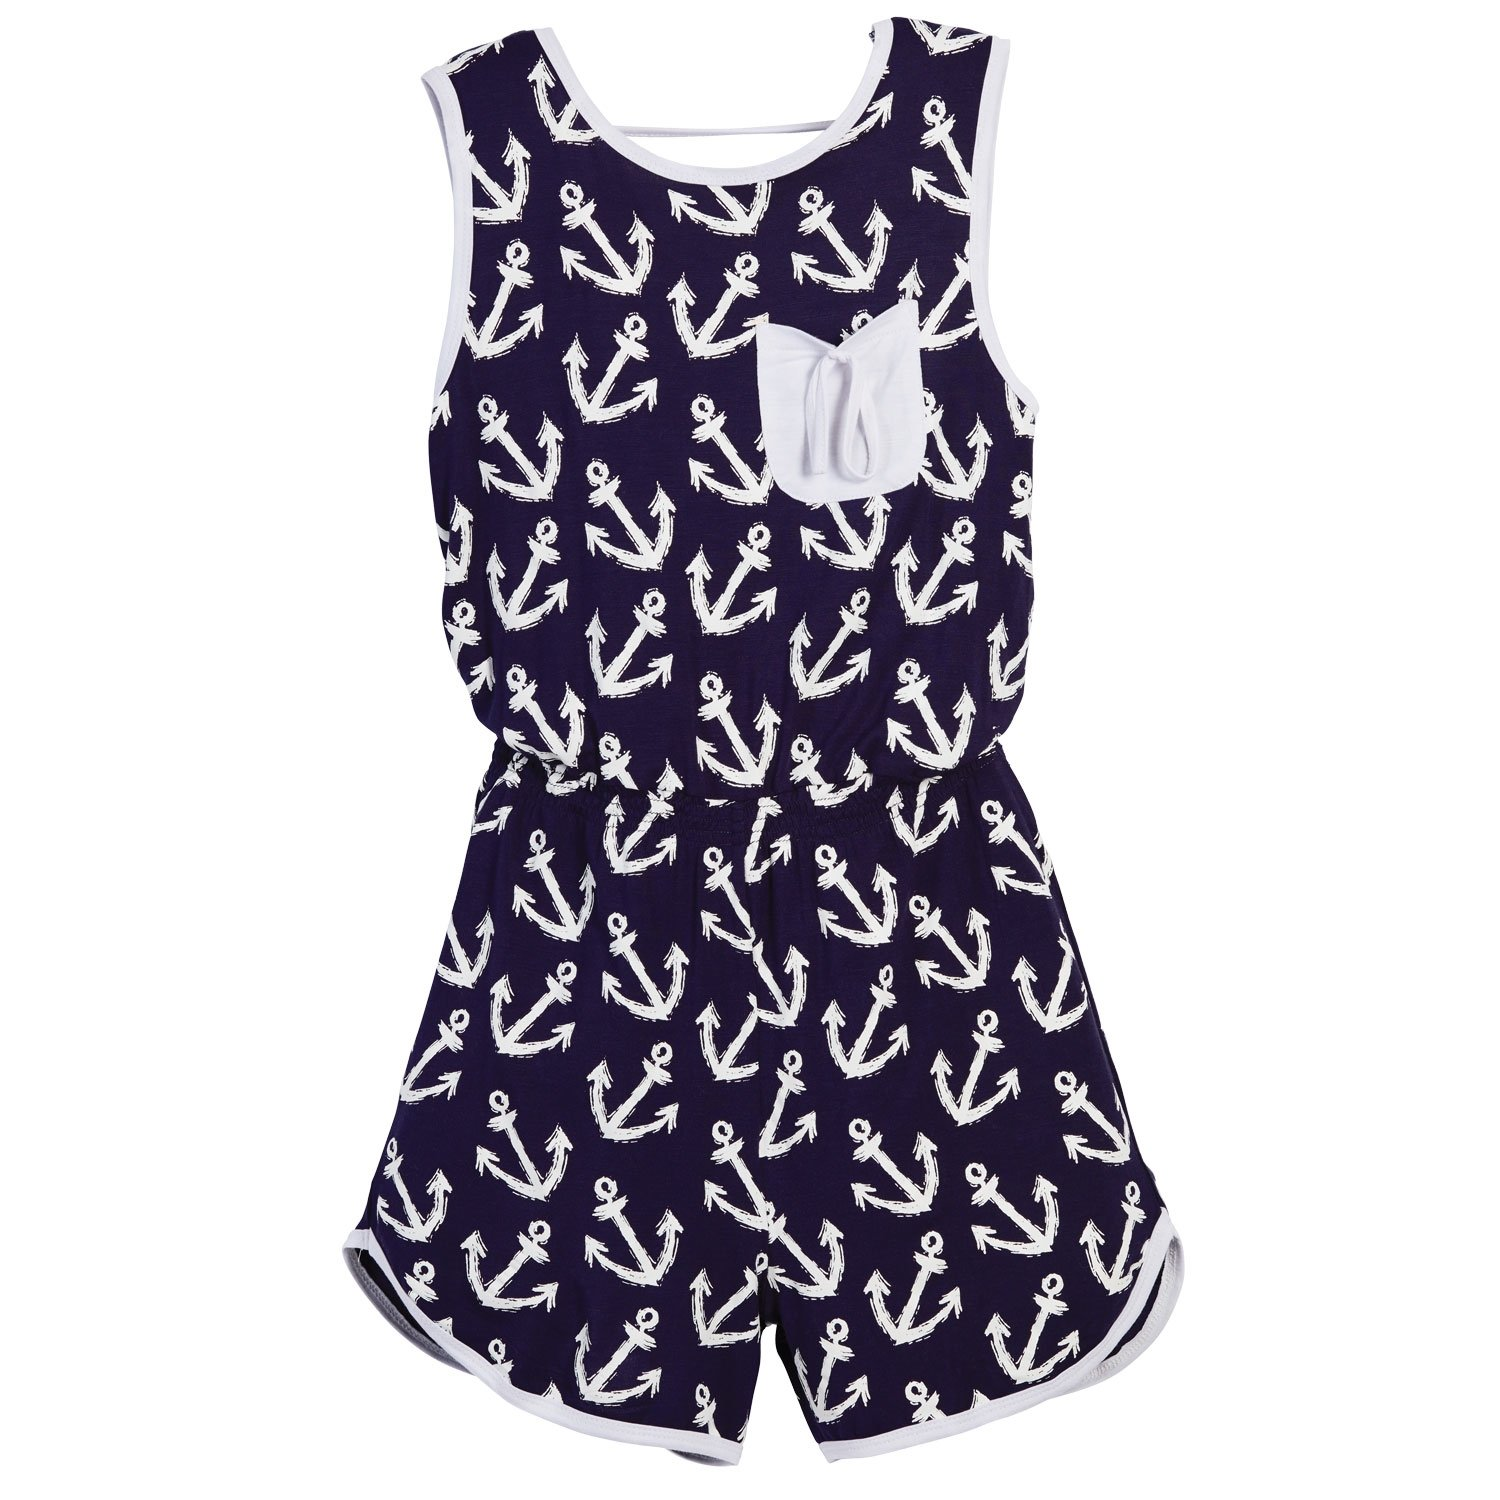 Beachcombers Girl's Tops Rayon/Spandex Anchor Romper Navy/White Extra Large